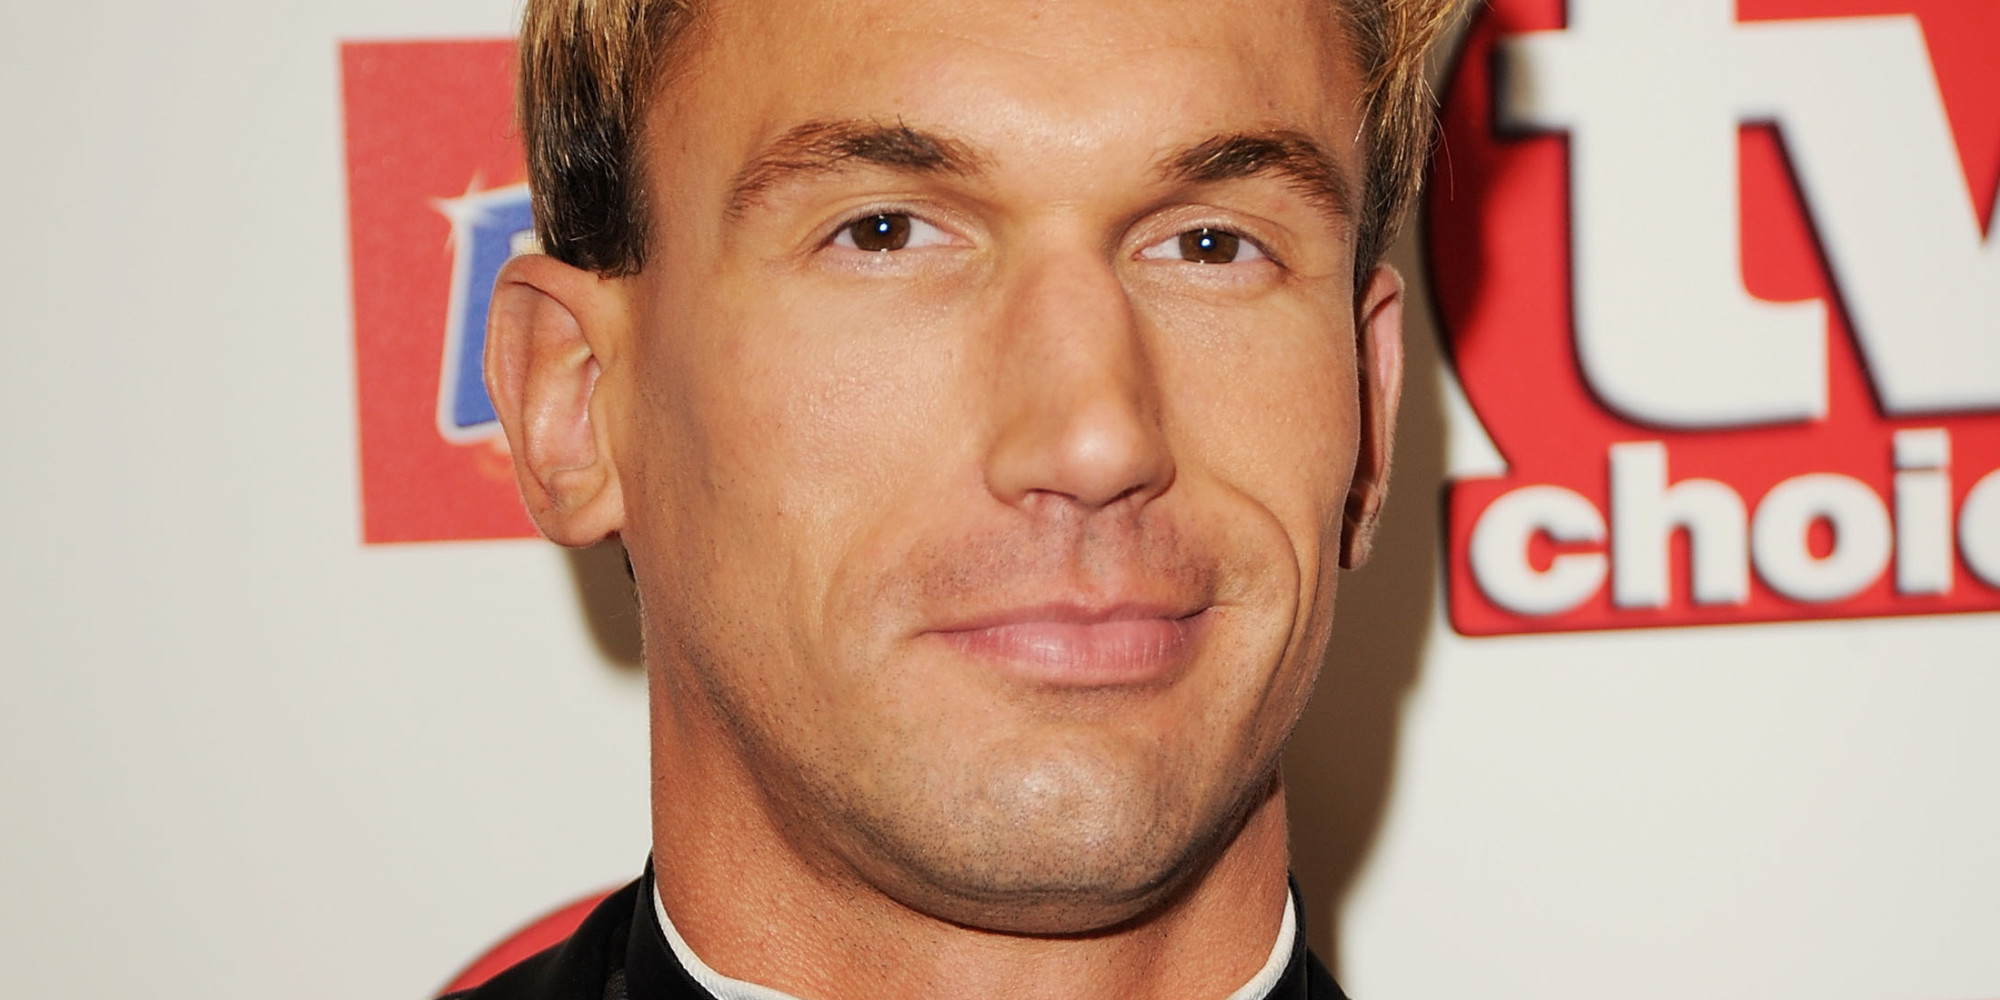 Christian jessen single